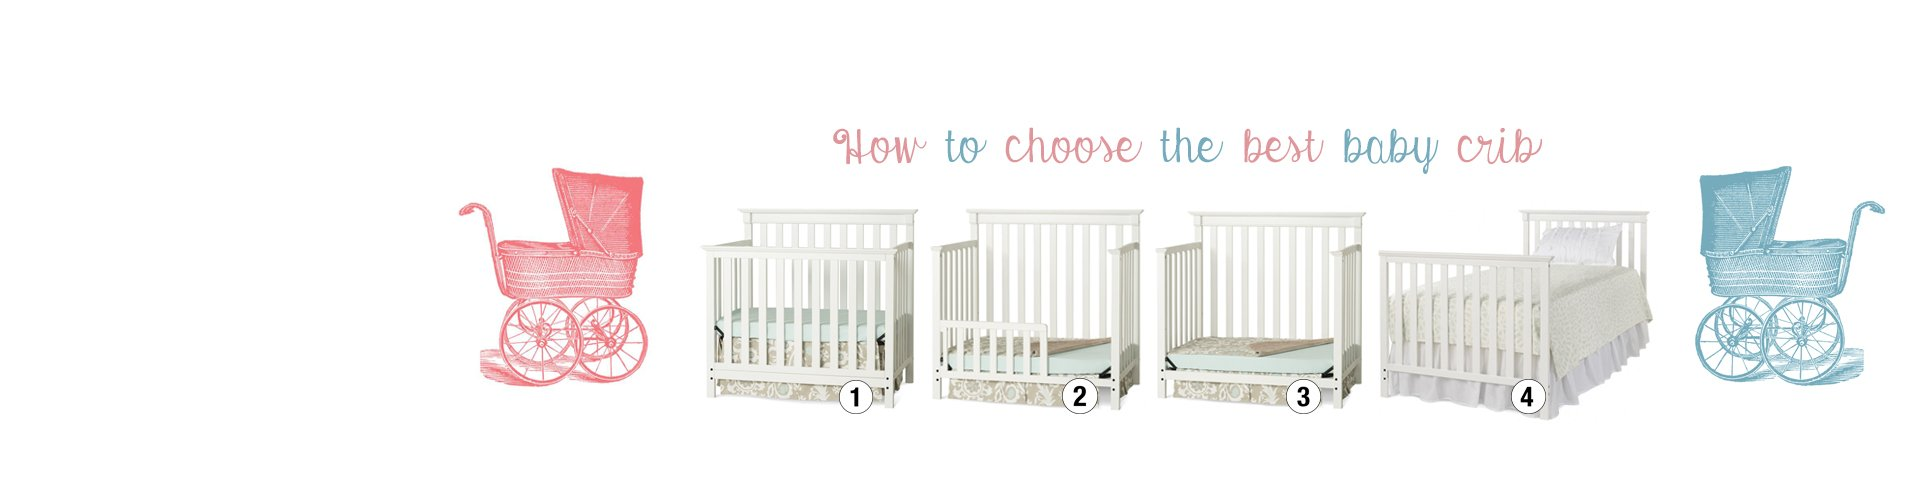 How To Choose Best Baby